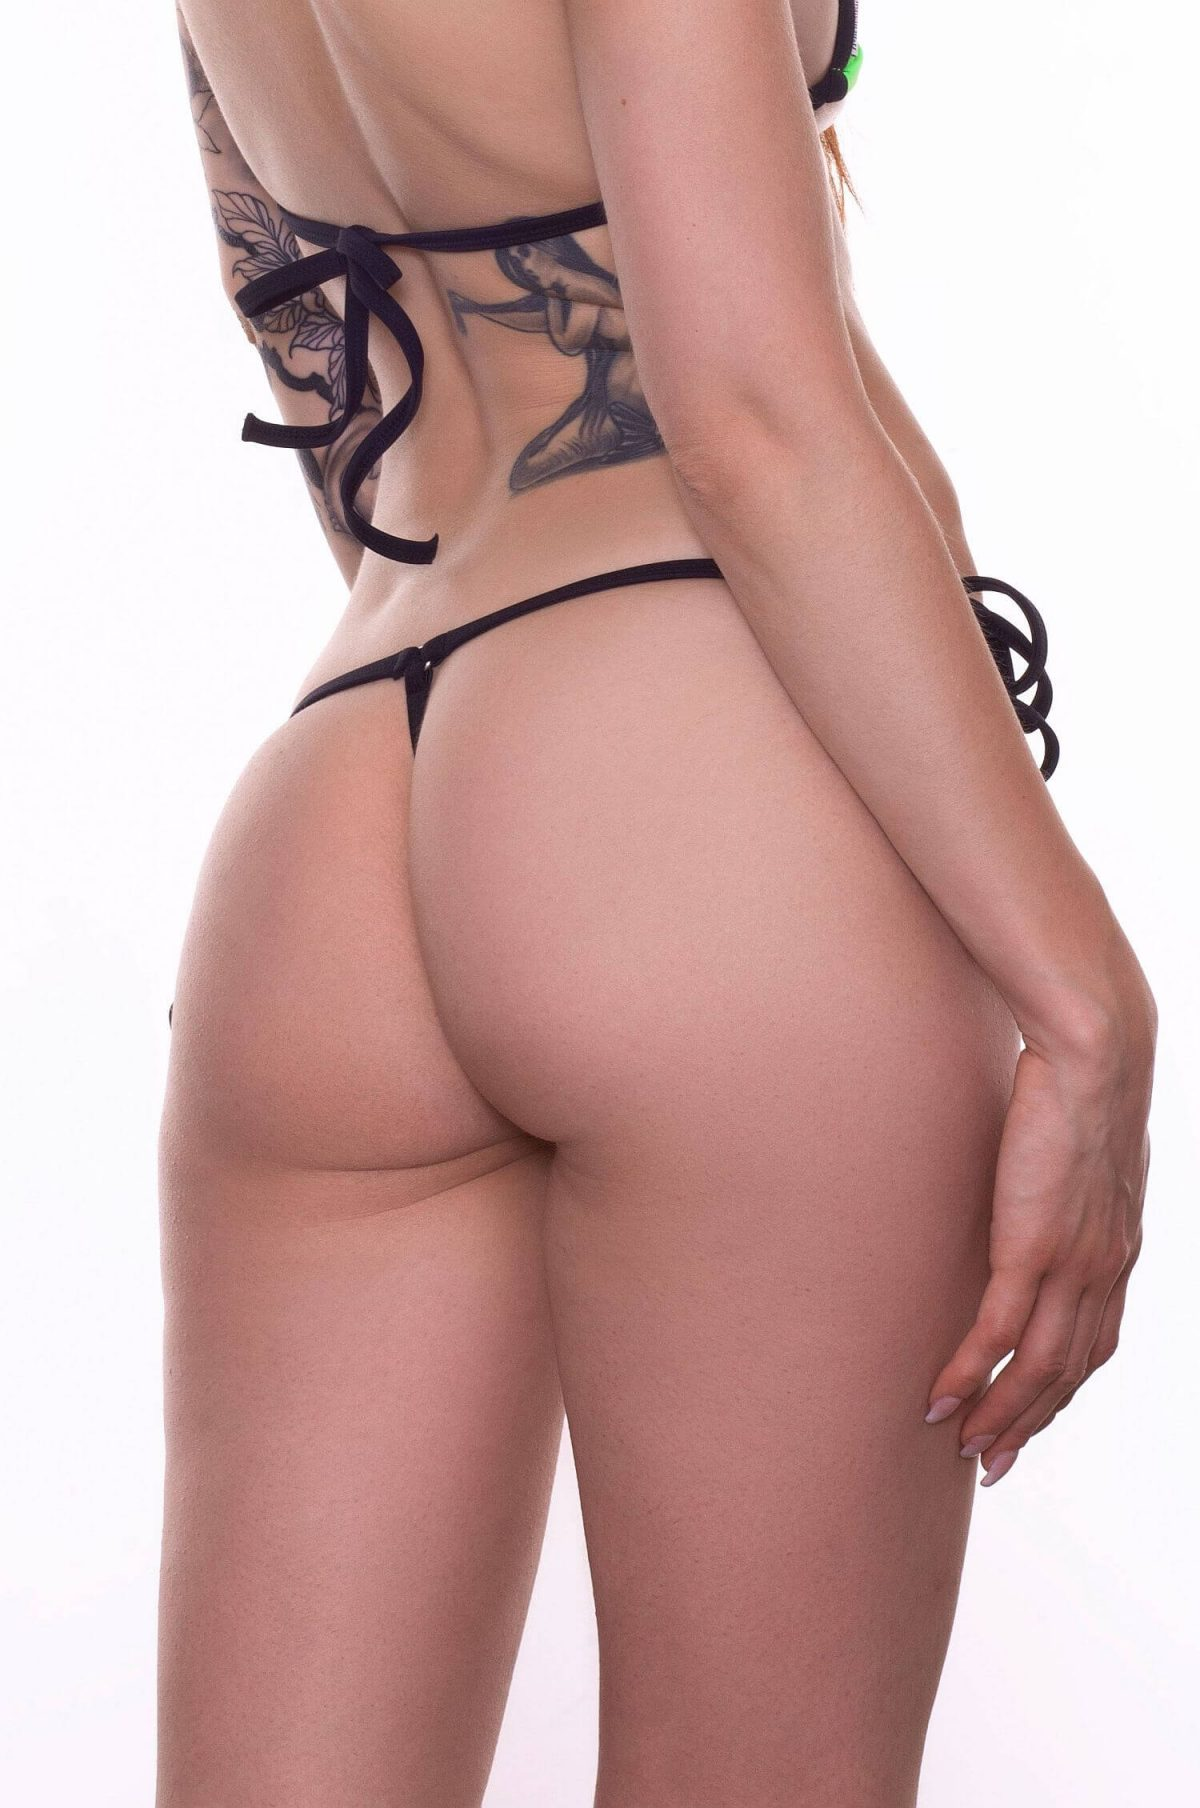 Thong bathing suit with side ties. Produced using Italian Lycra Xtra Life fabric, quality tested. Designed with love, made with care.